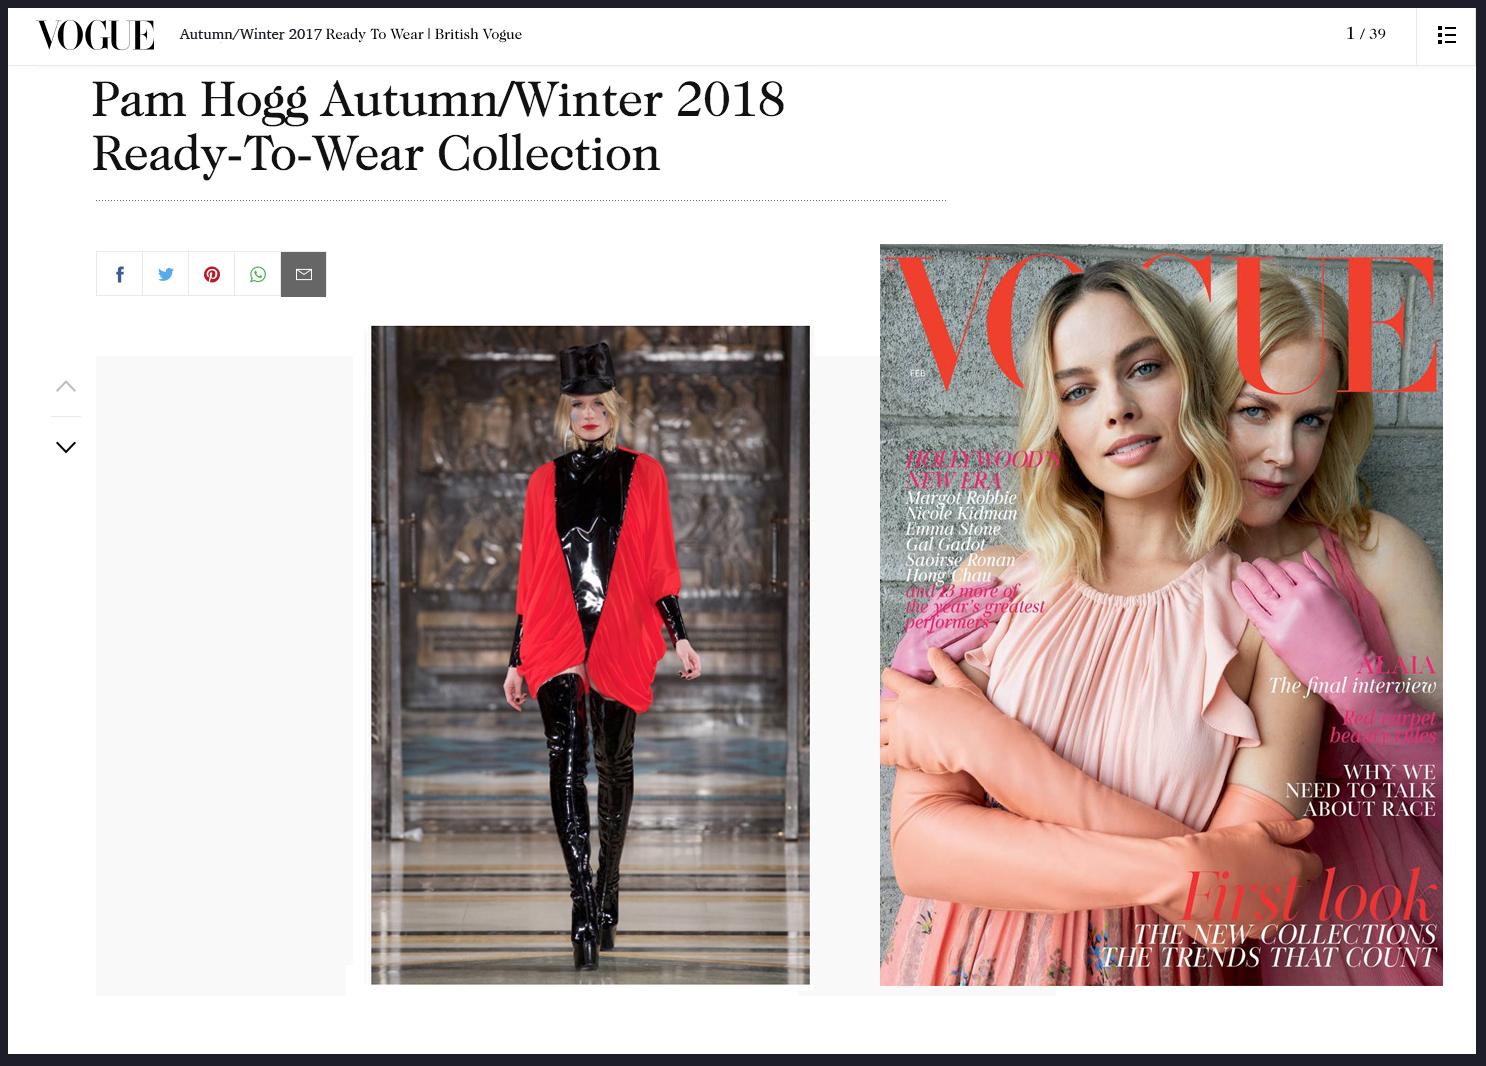 Copy of Pam Hogg Autumn Winter 2018 Vogue